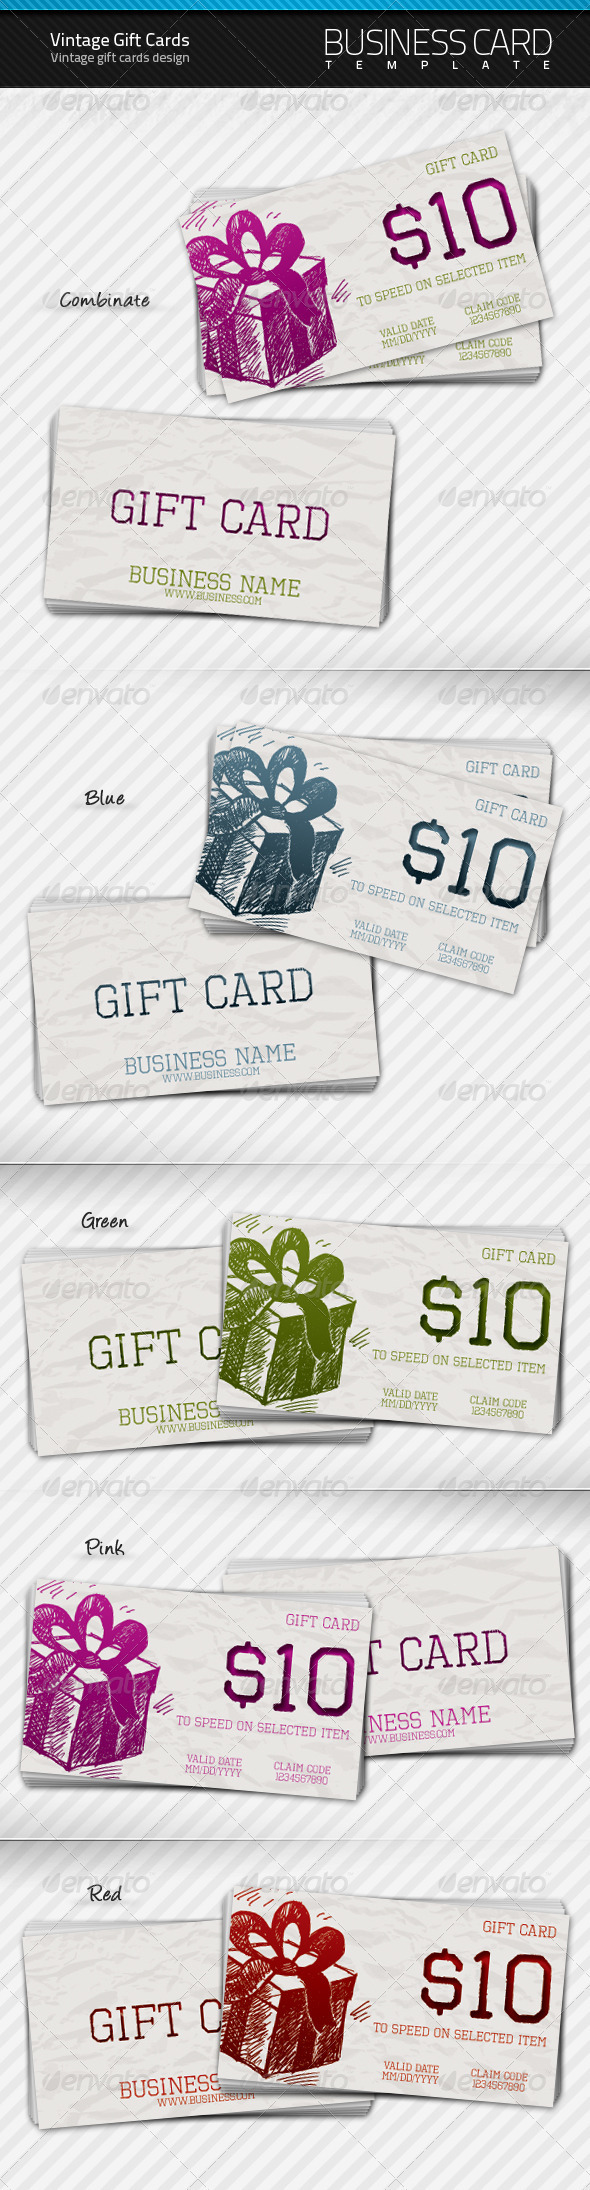 GraphicRiver Vintage Gift Cards 138575